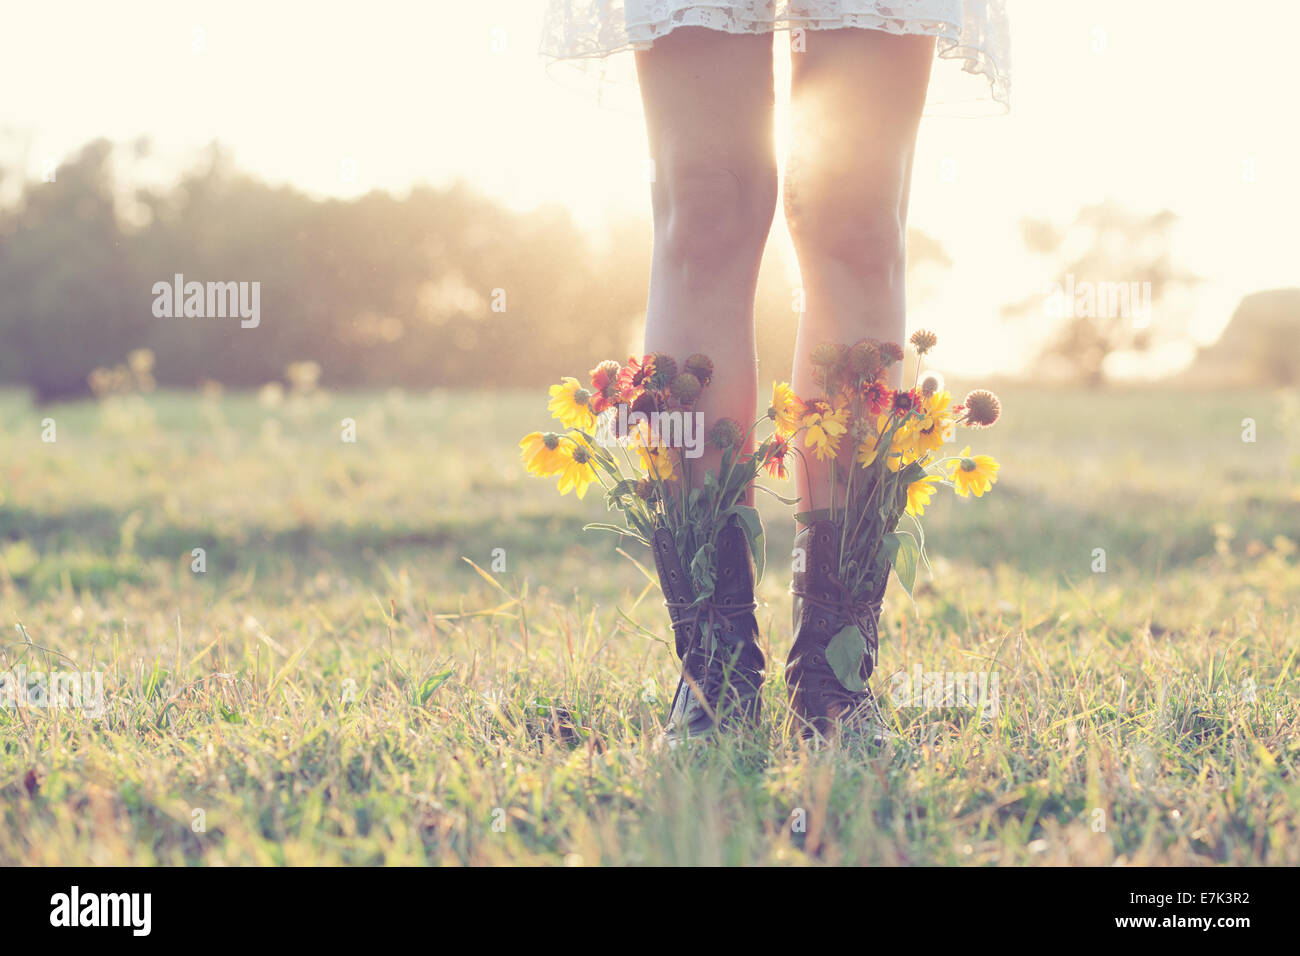 Creative bouquet in boots - Stock Image